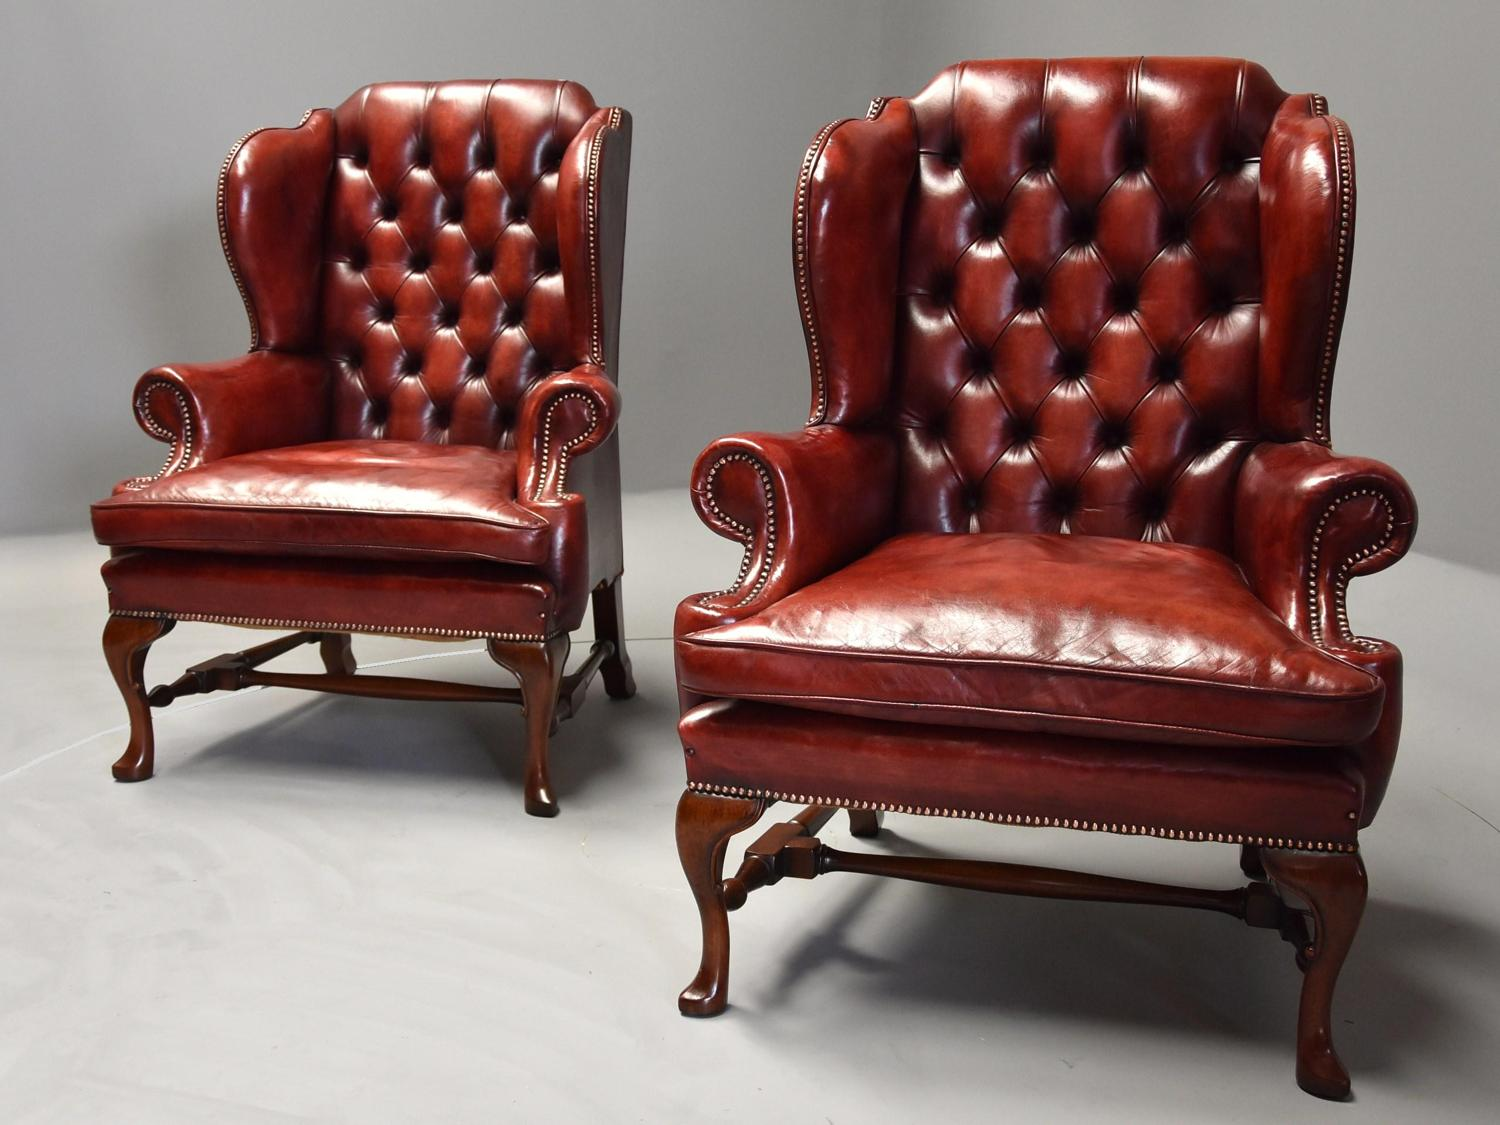 Pair of Georgian style deep buttoned red leather wing armchairs